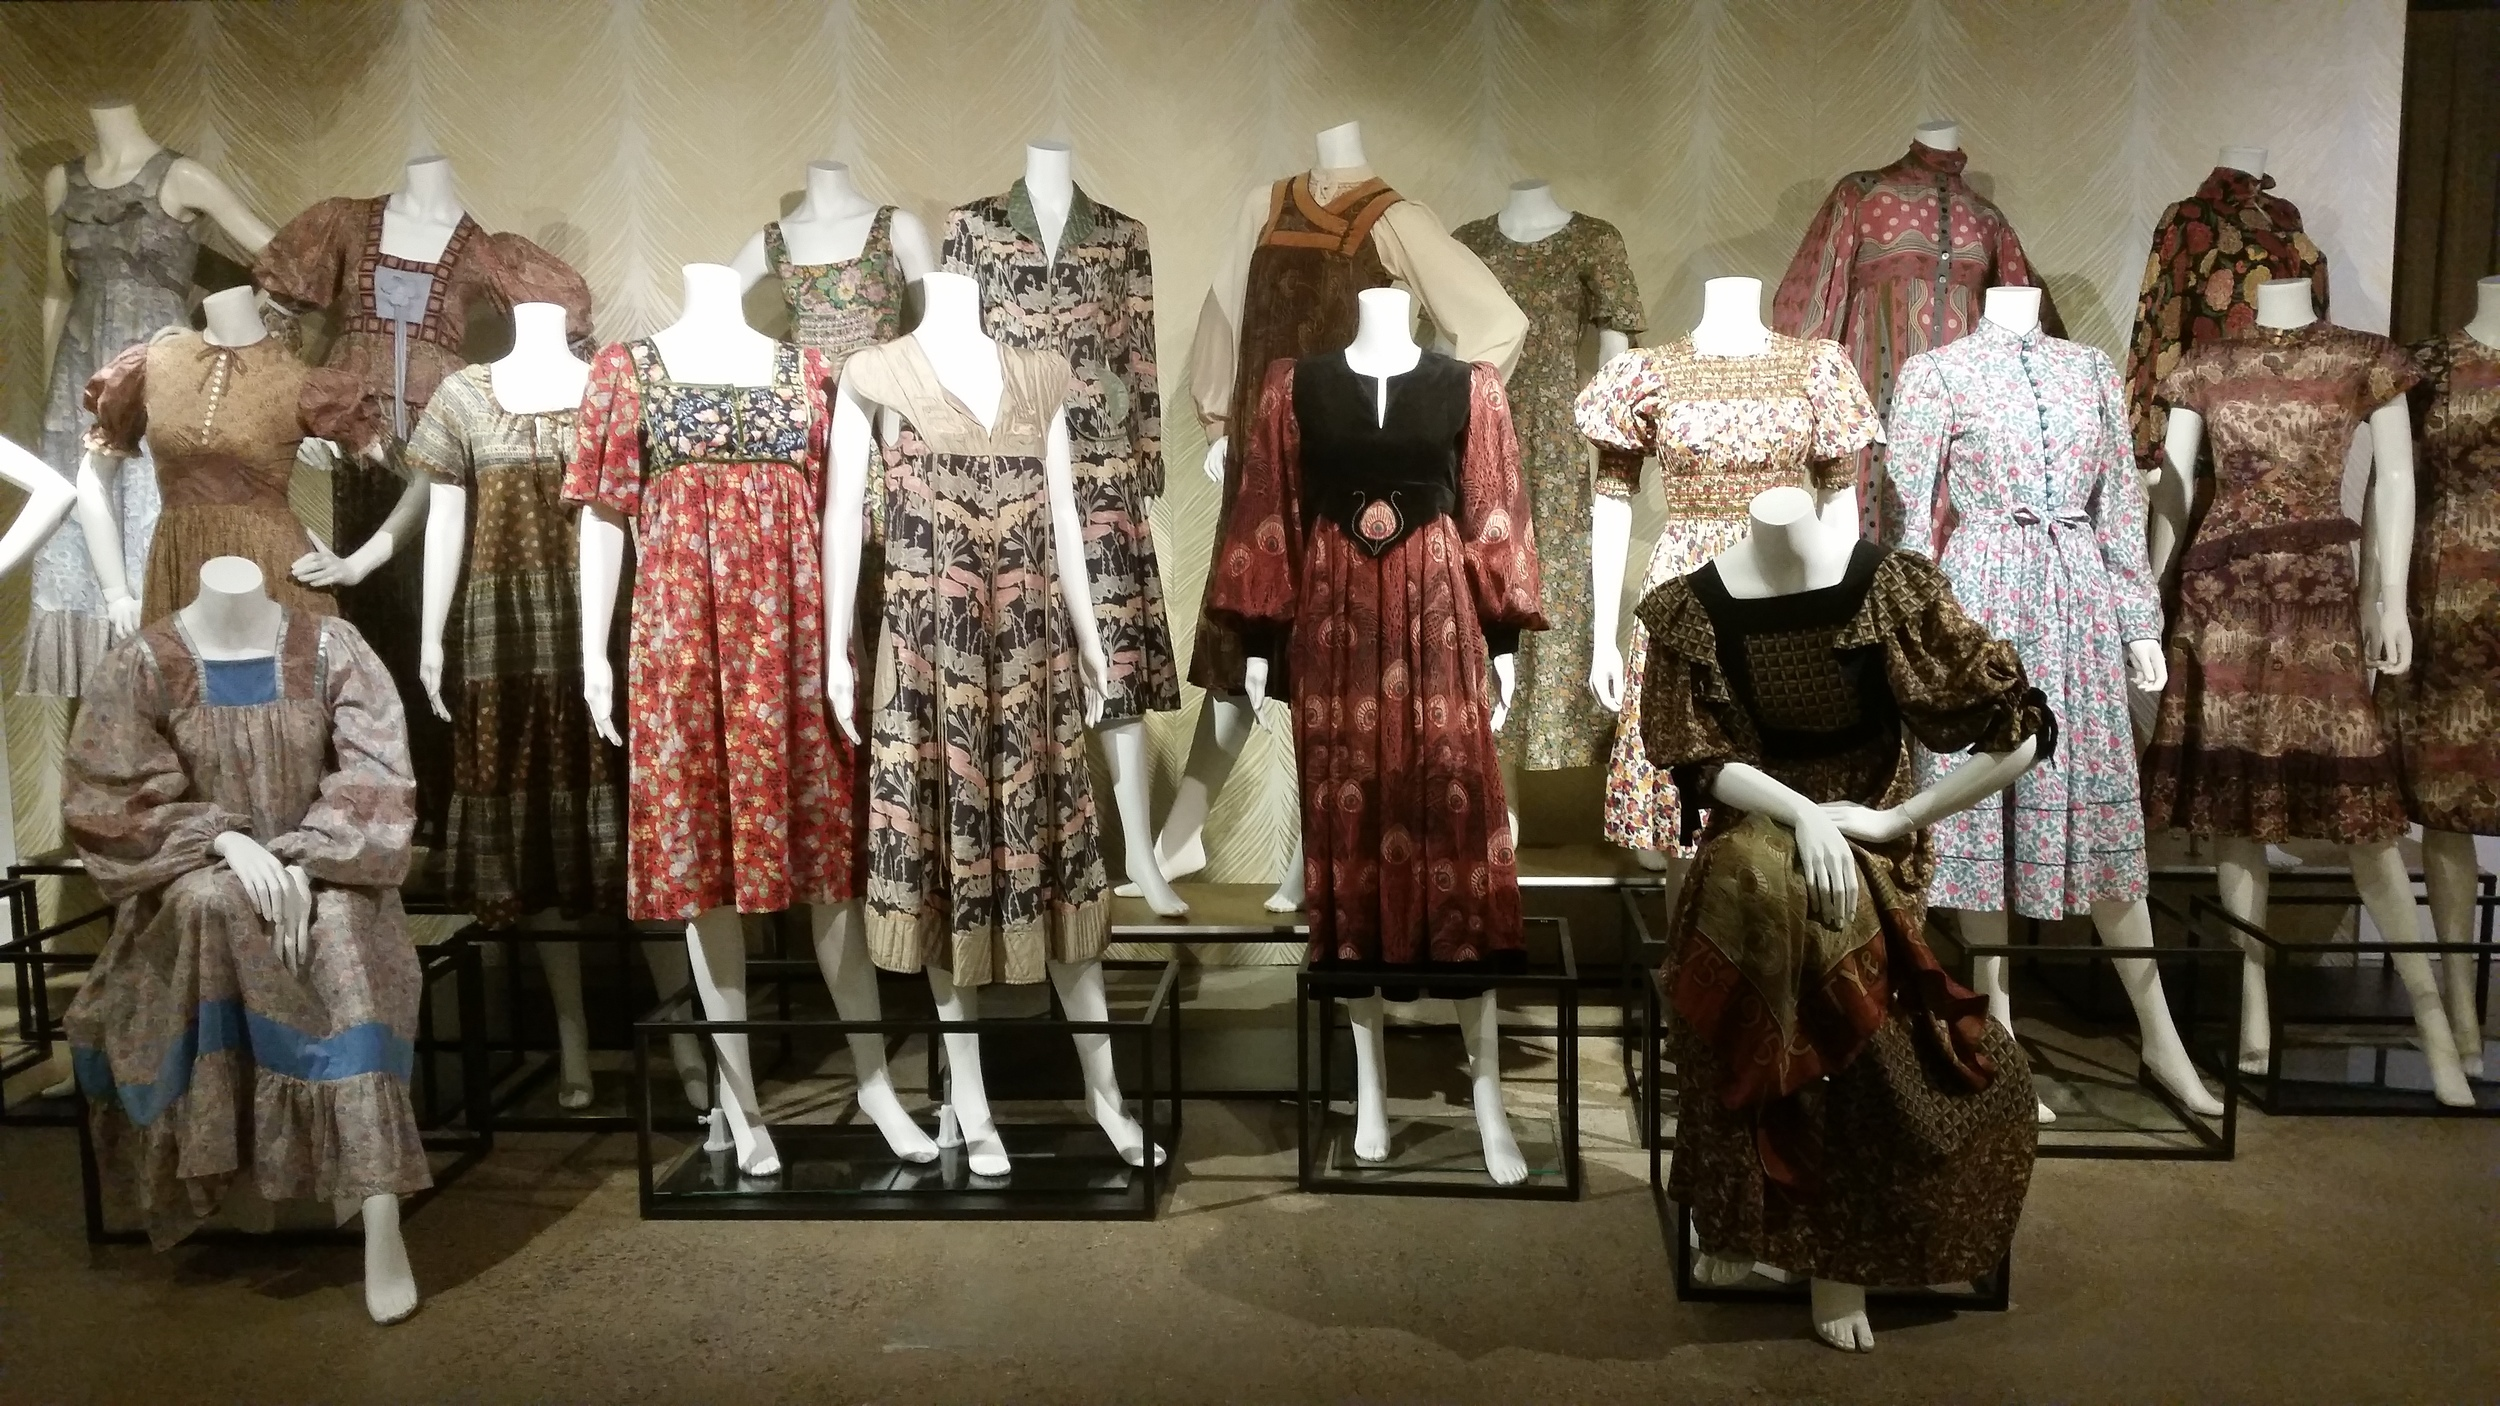 1970s Nostalgia - floral prints from the period when textile designer Richard Nevill was Liberty's design director